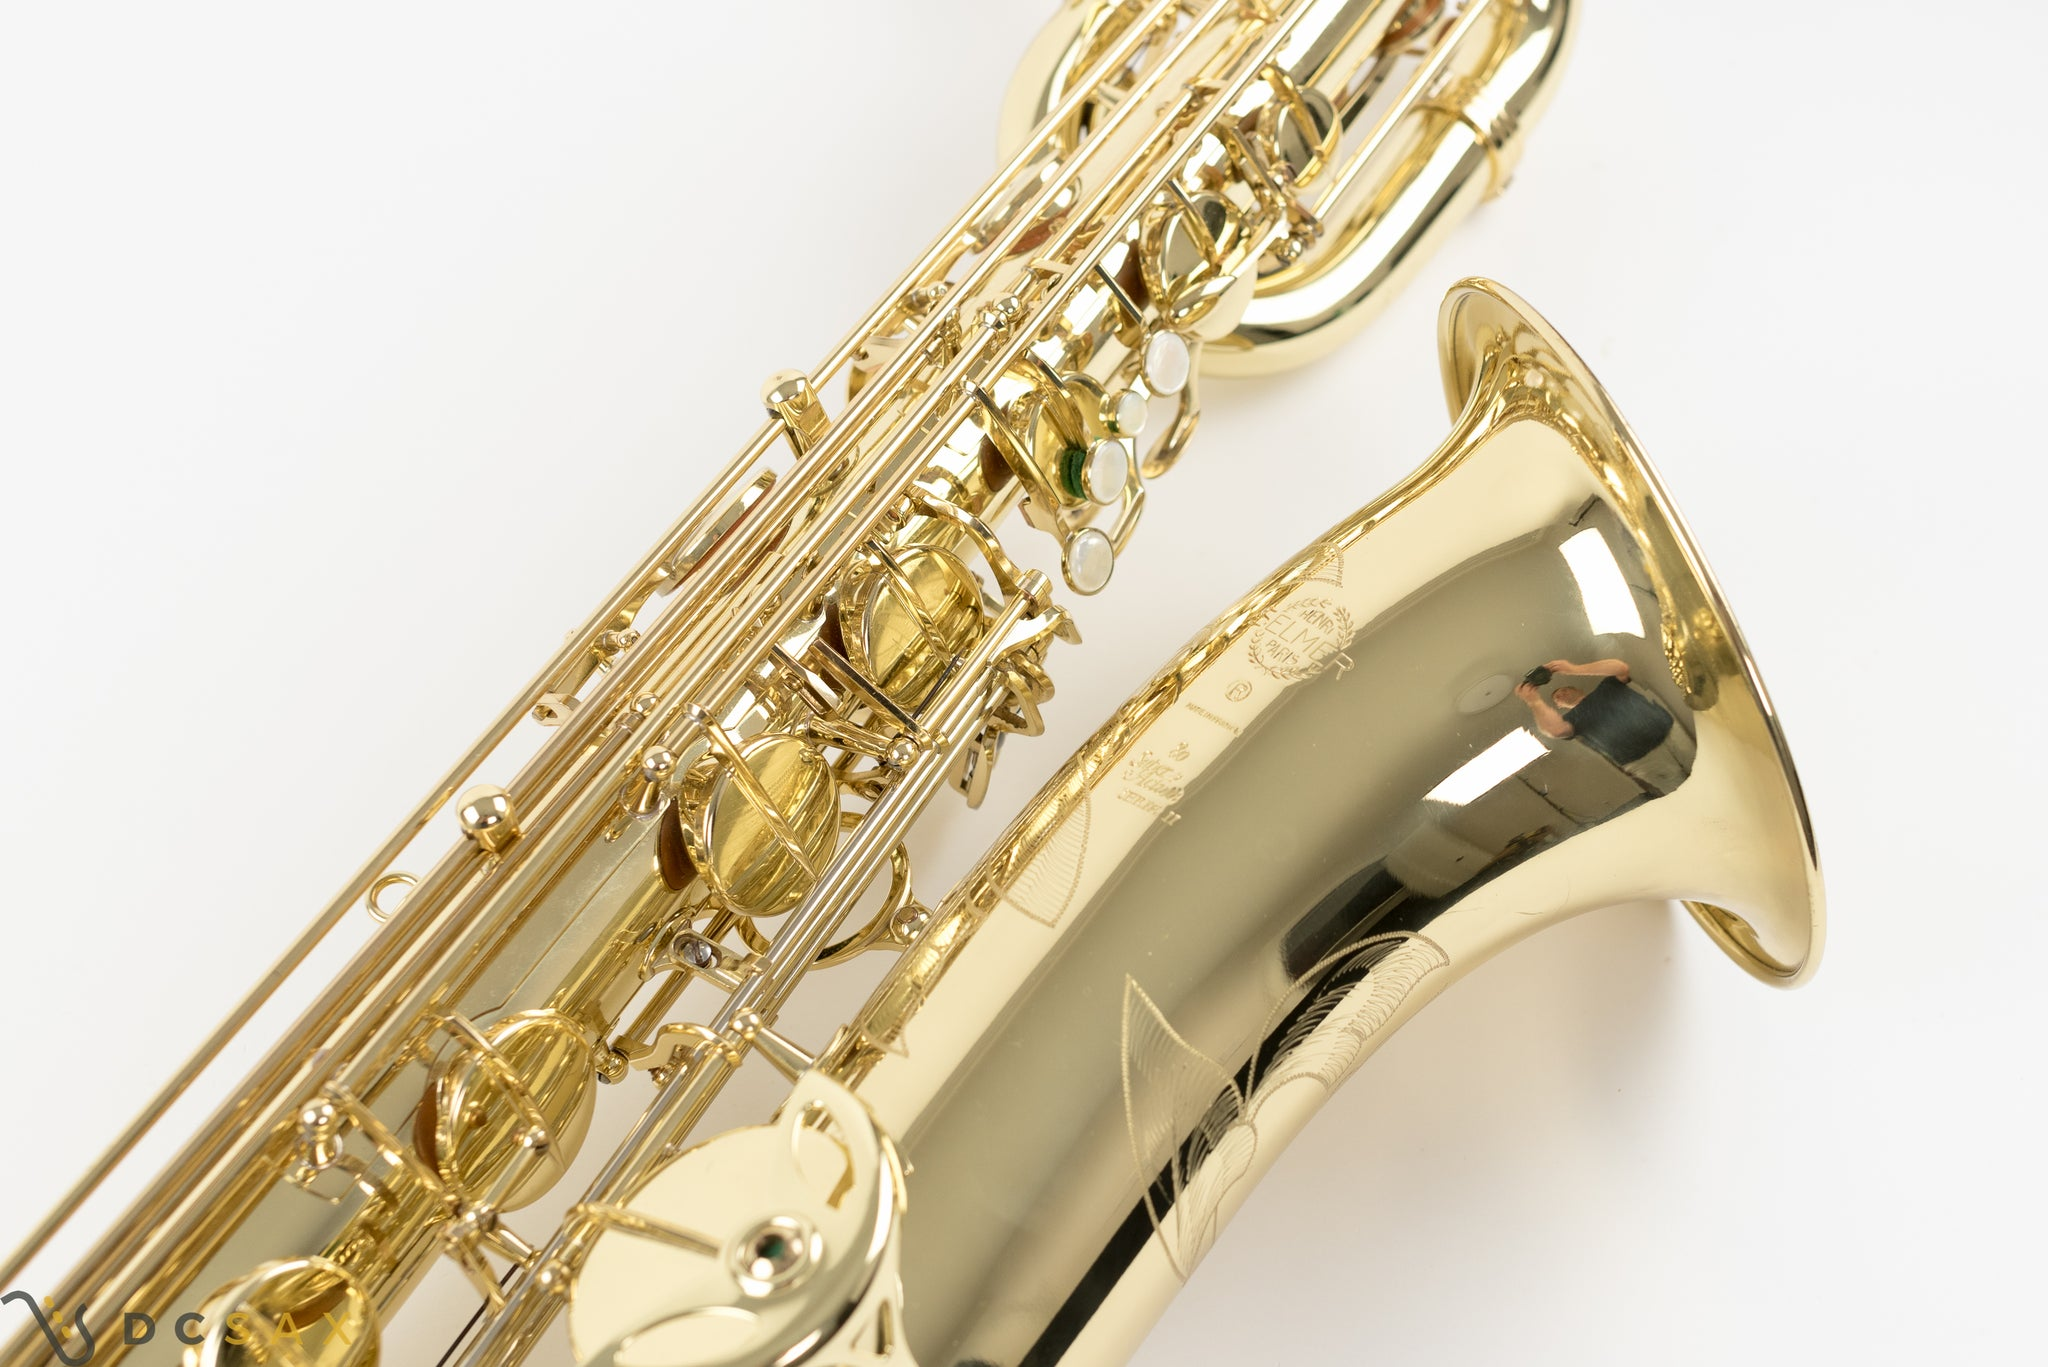 Selmer Series II Baritone Saxophone, Just Serviced